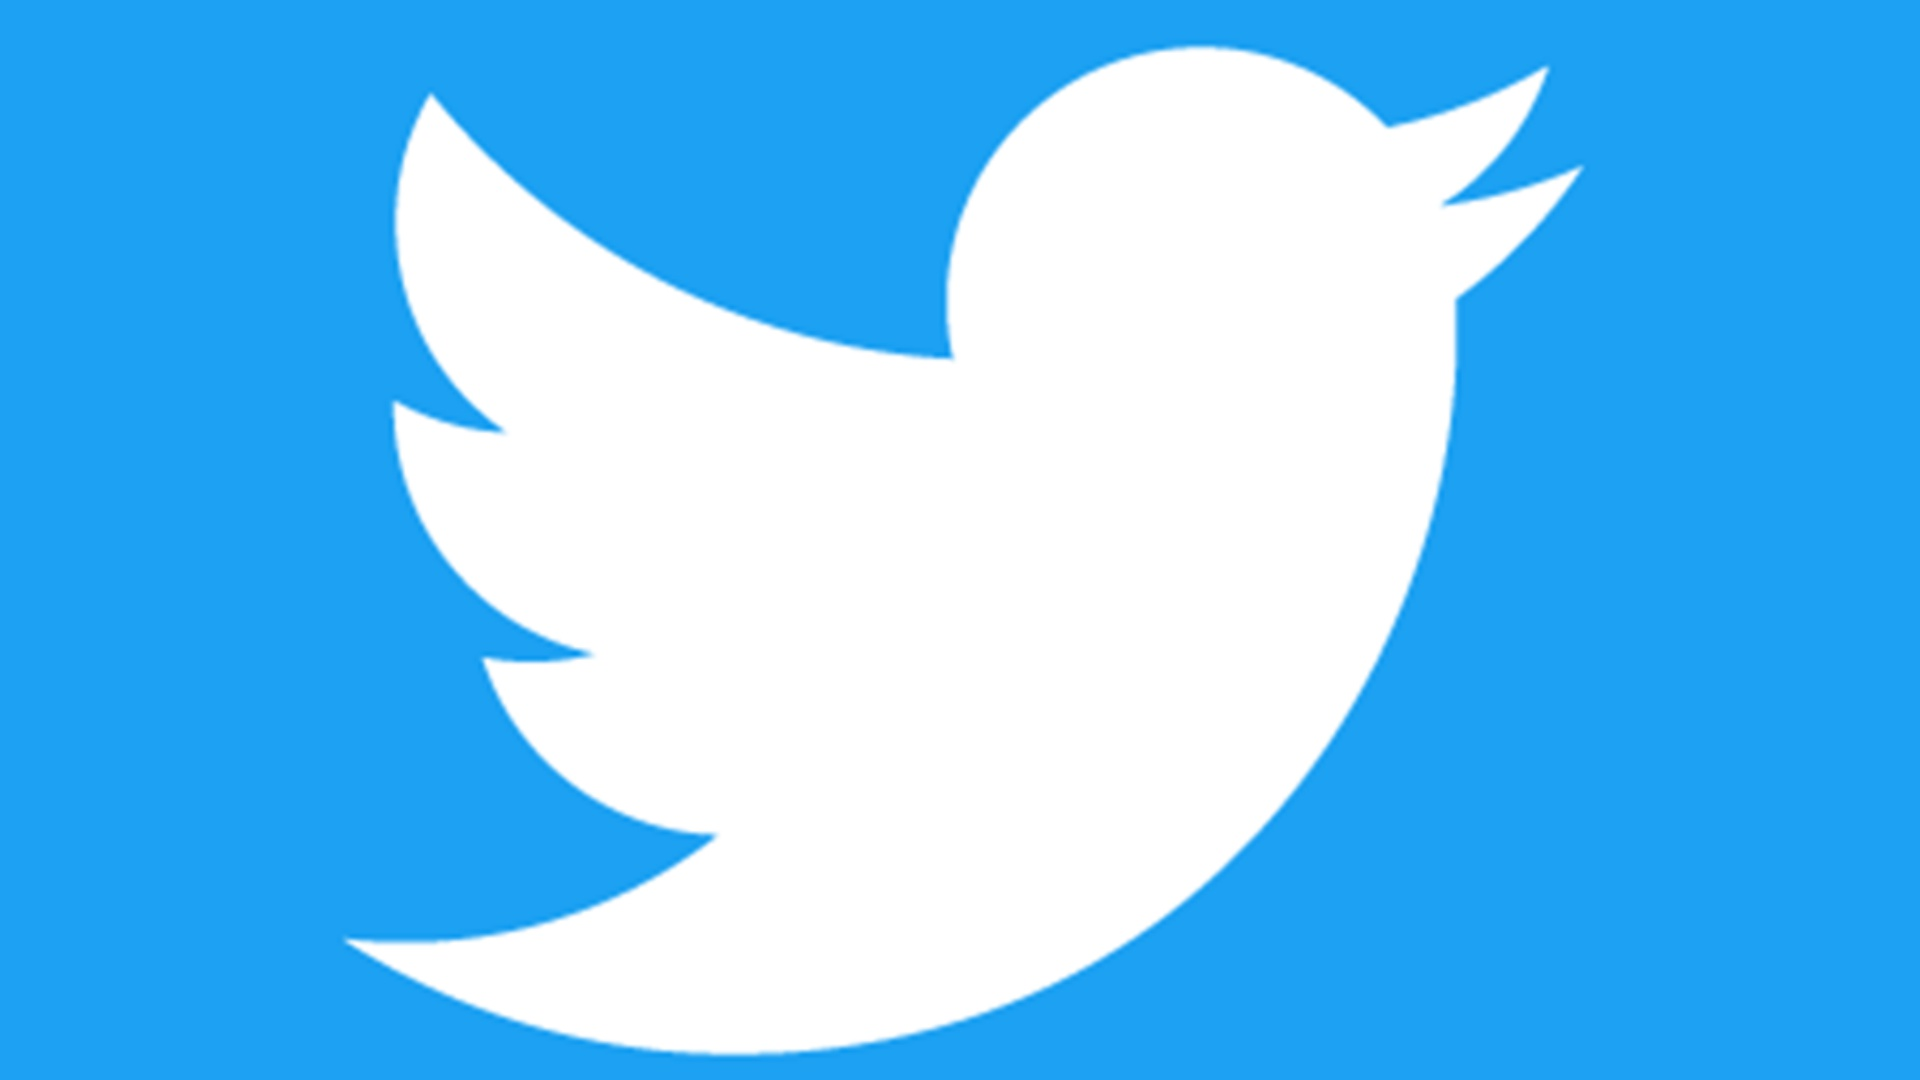 Does Twitter's neural network have a bias problem? It sure looks like it - htxt.africa